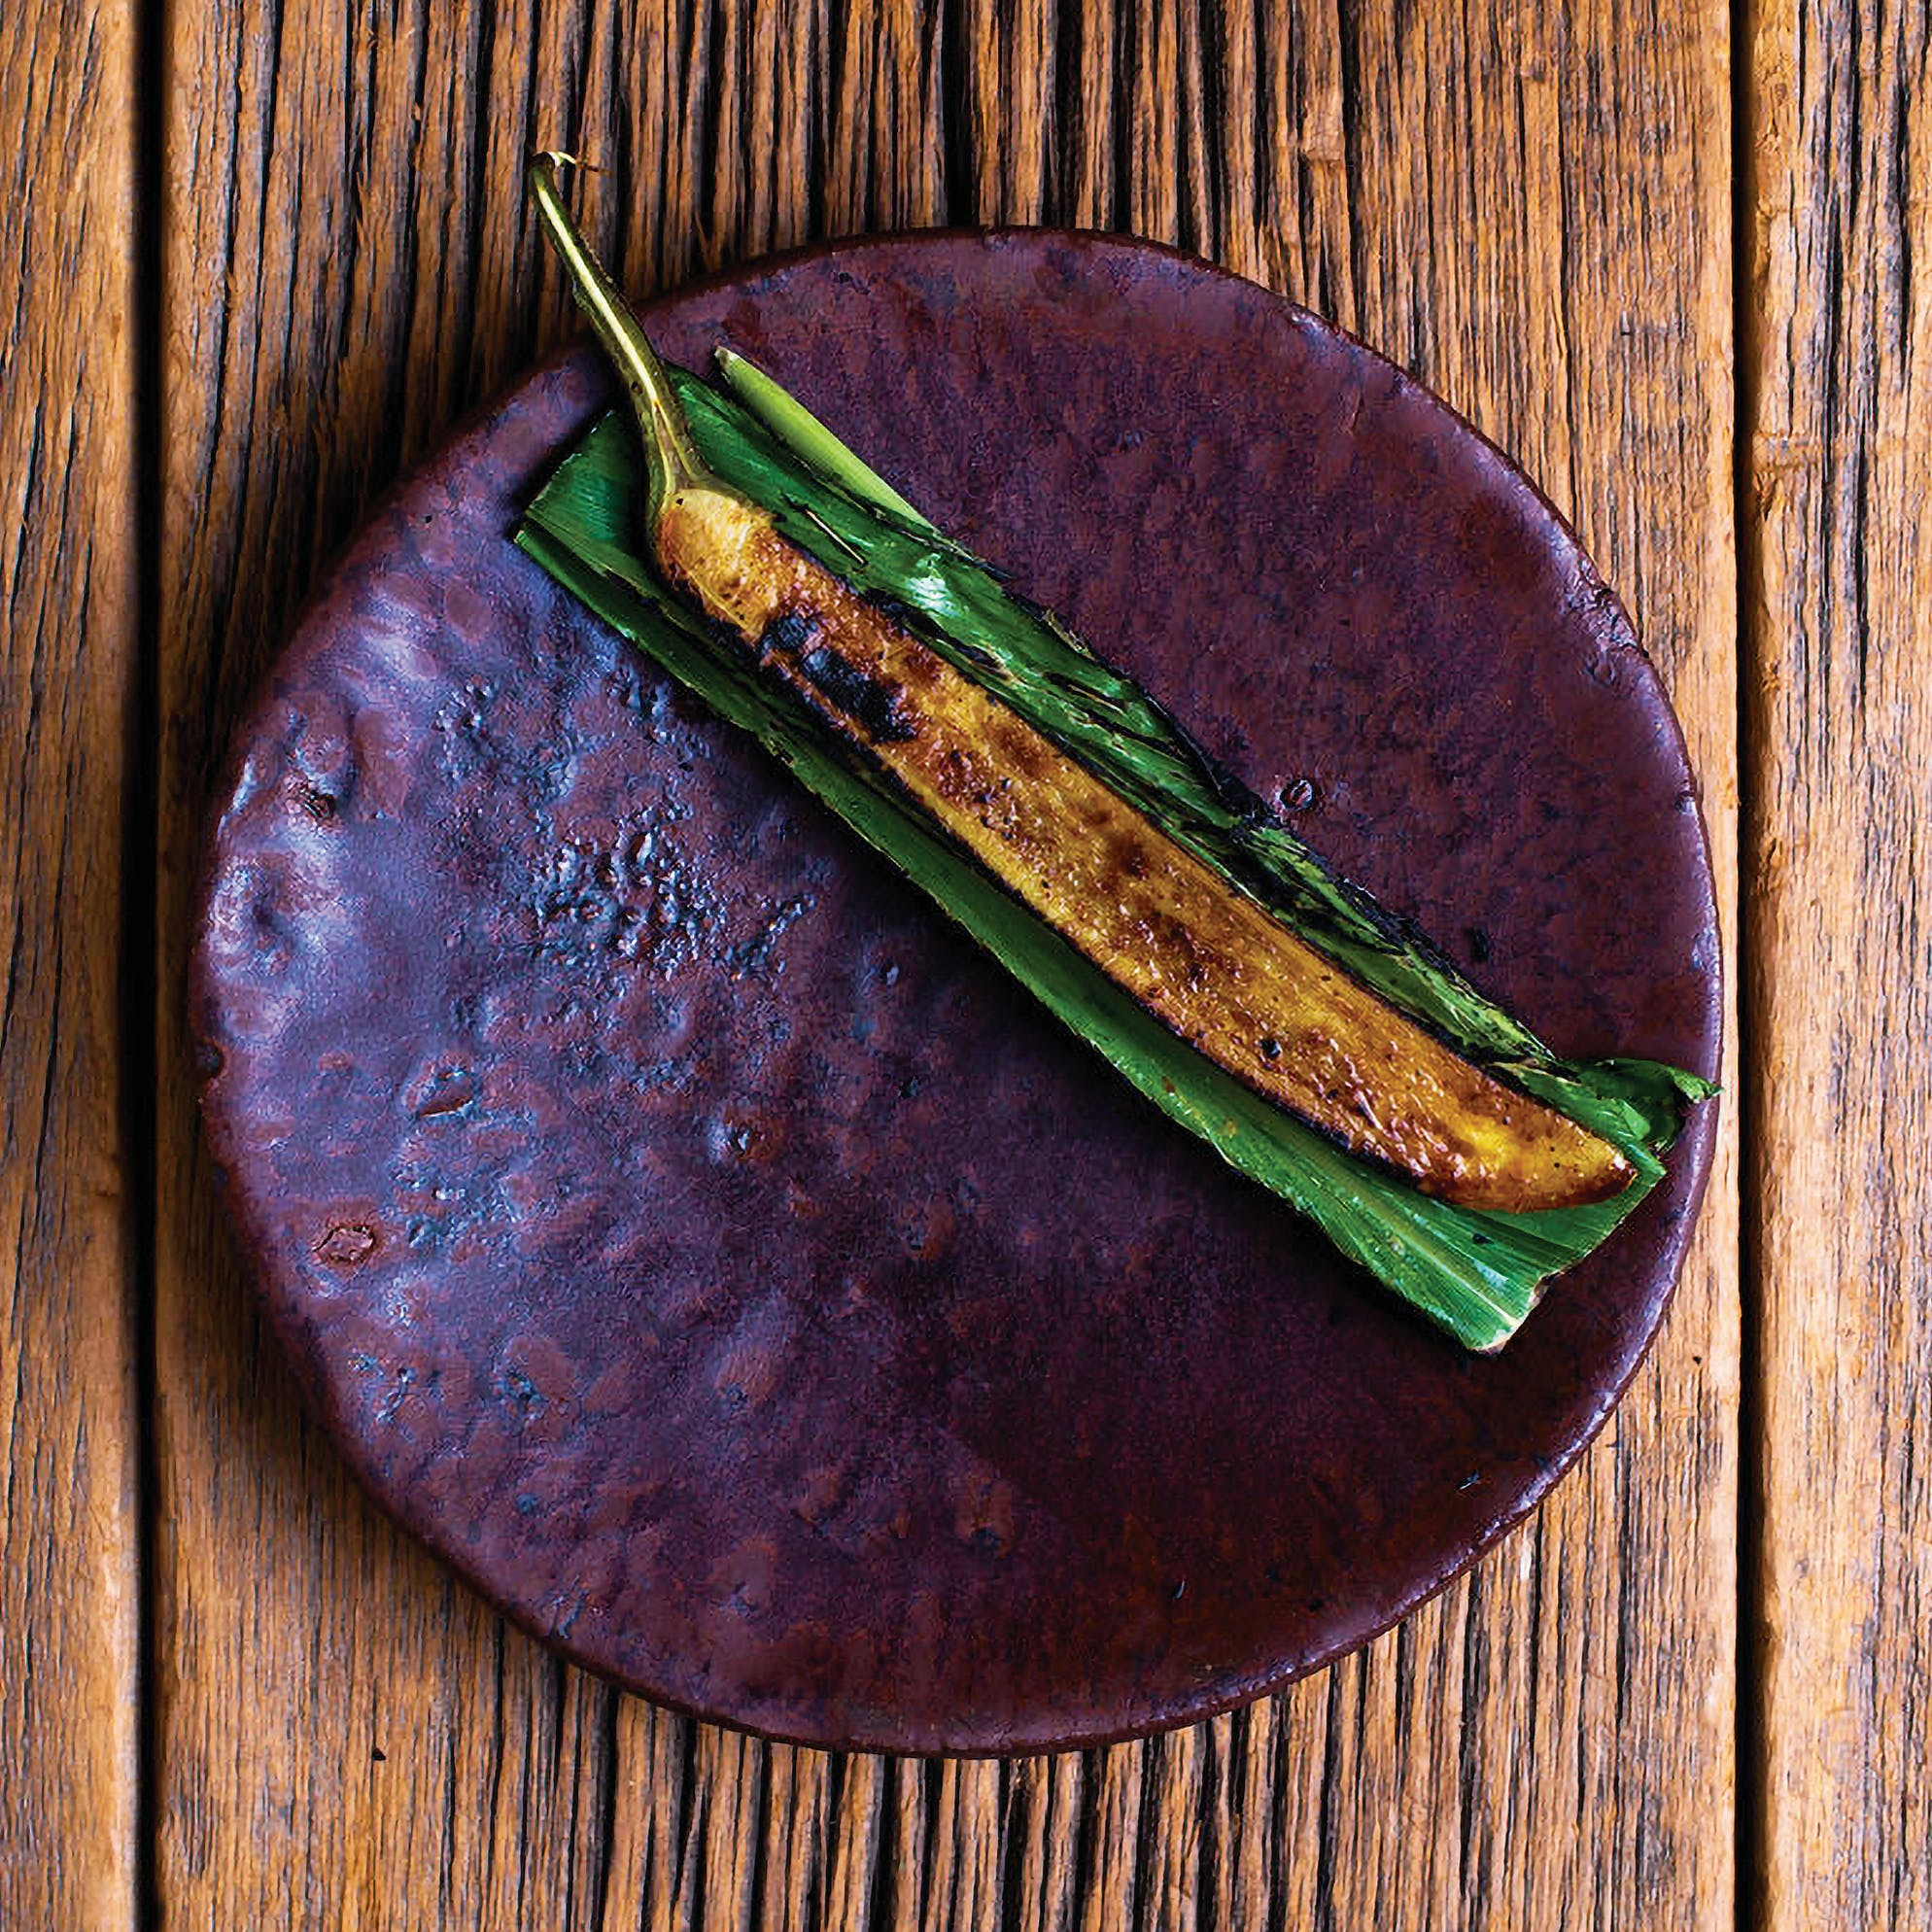 mottled purple ceramic plate with a charred thin eggplant on a folded leaf